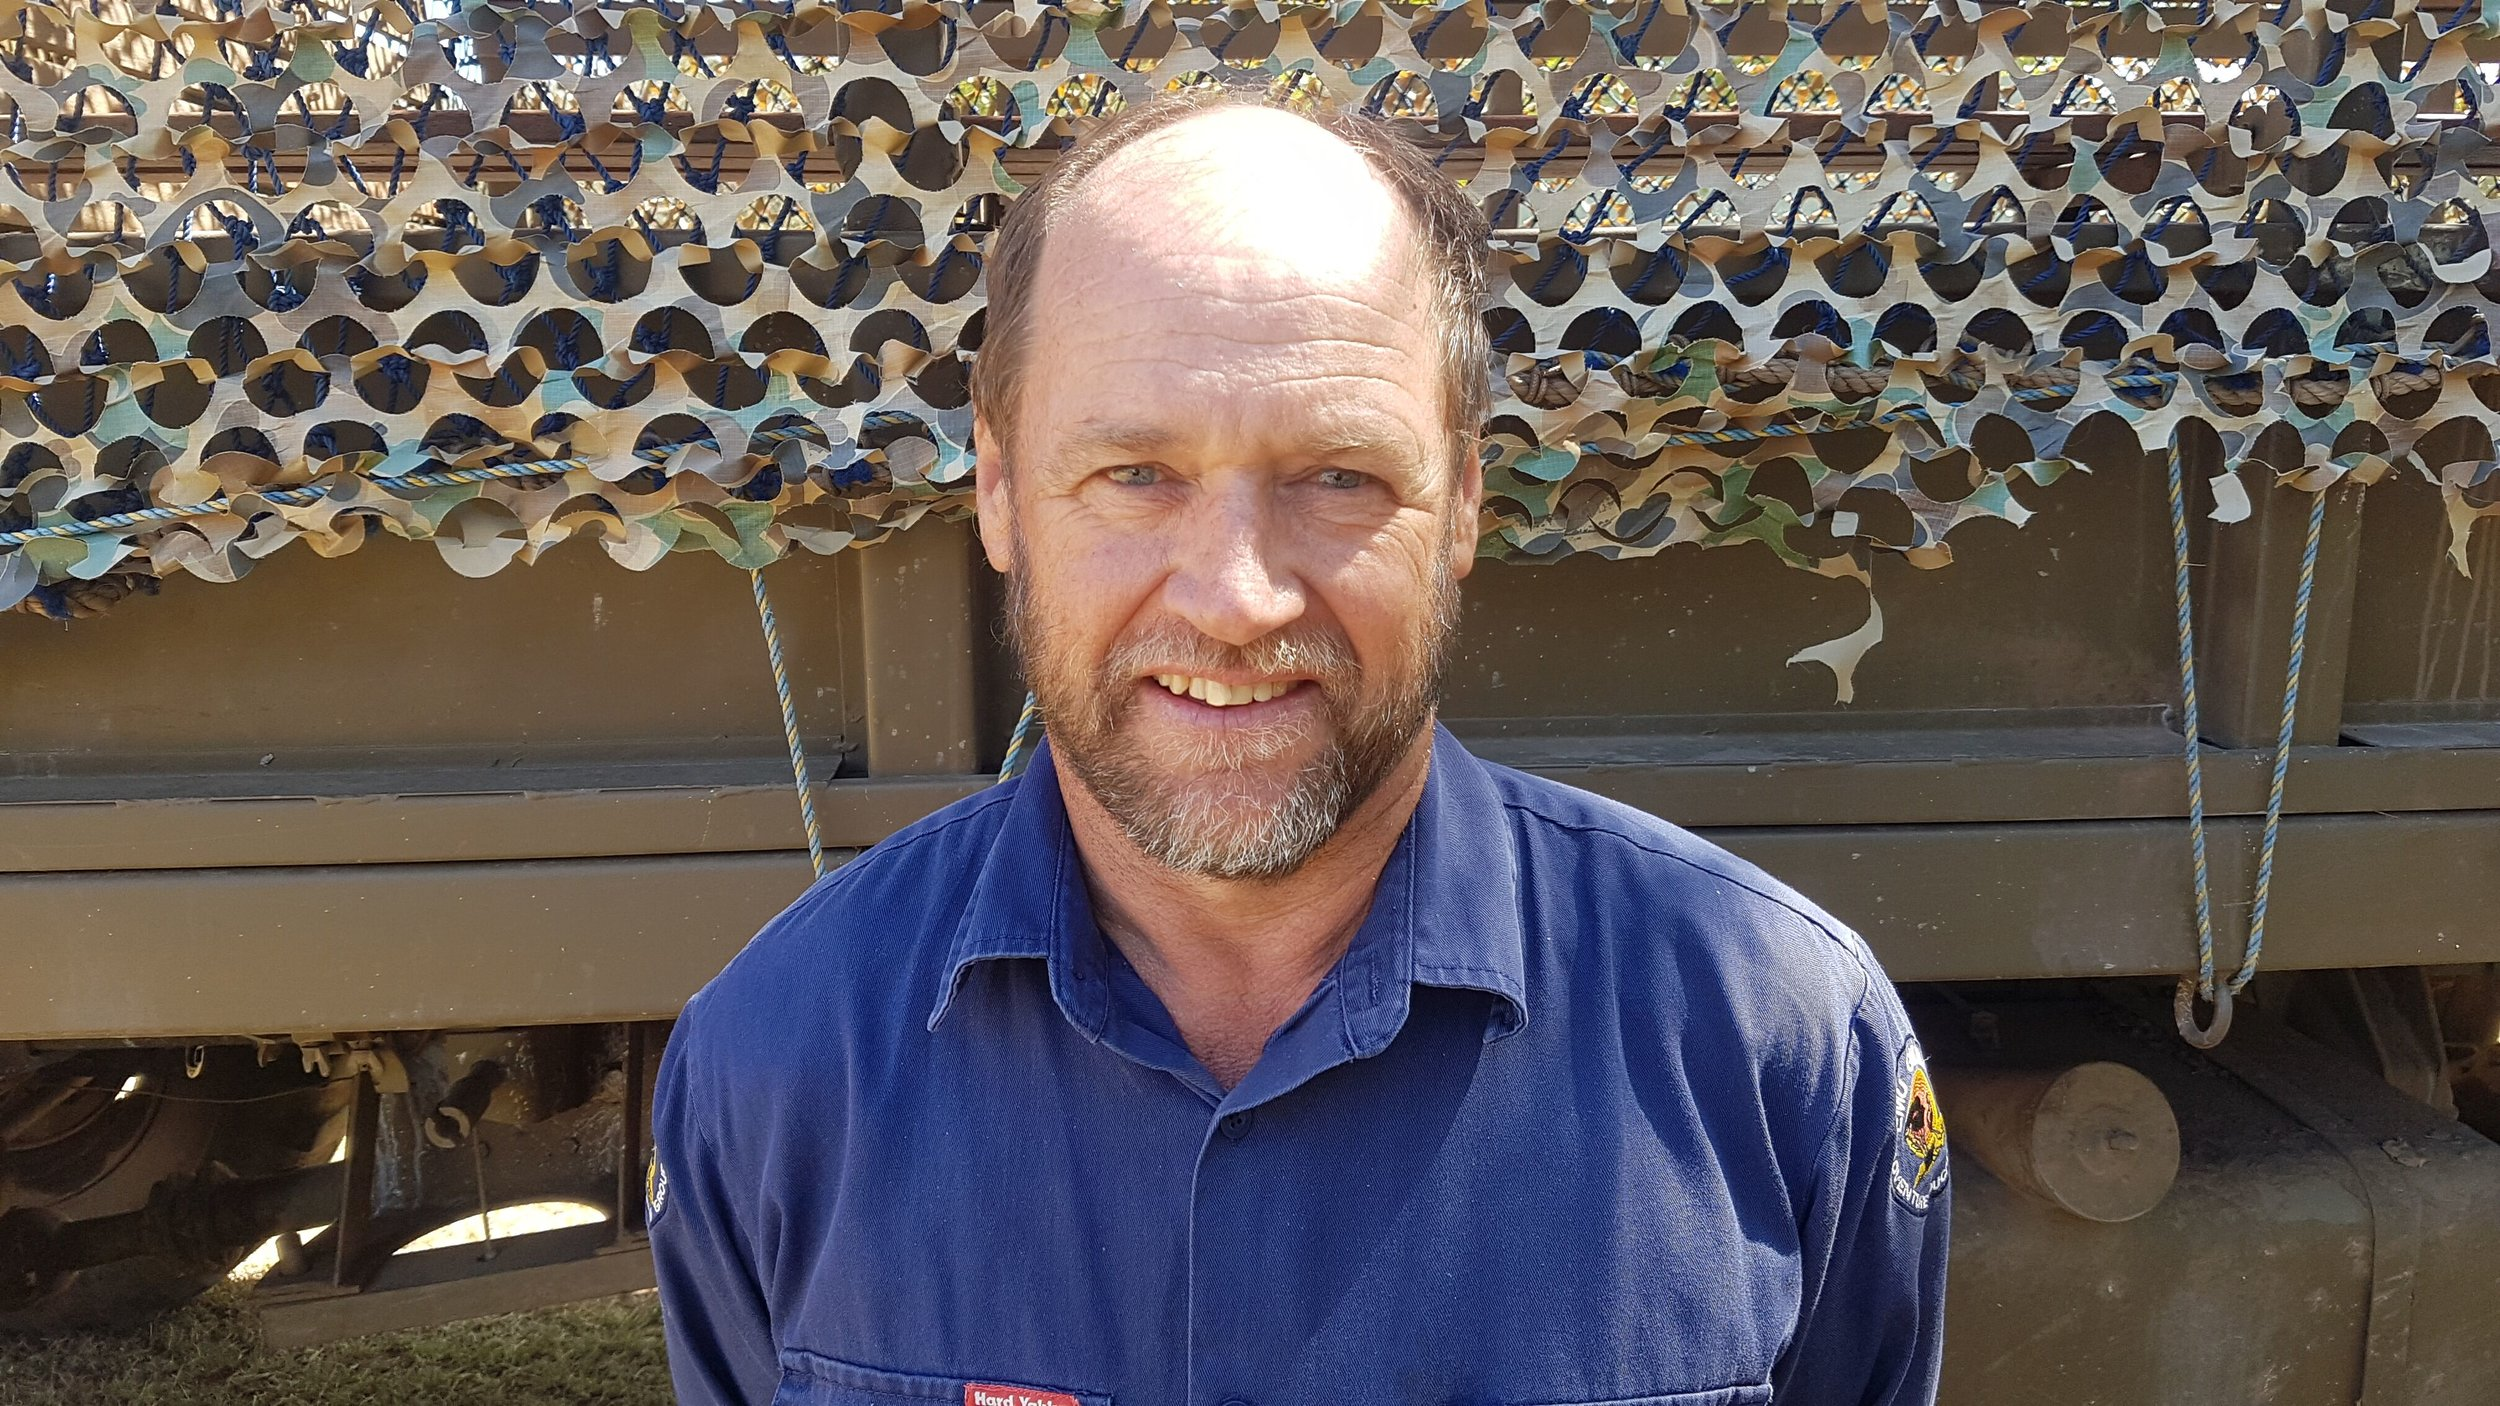 rod isaac - Rod is a valued member of our Emu Gully team. Joining us in the second half of 2008, Rod has raised the standard in his very detailed and systematic approach to cleaning. He has enabled the Helidon campus to be maintained to the highest possible standard. His diligence and flexibility define his consistent attitude that no job is too difficult.